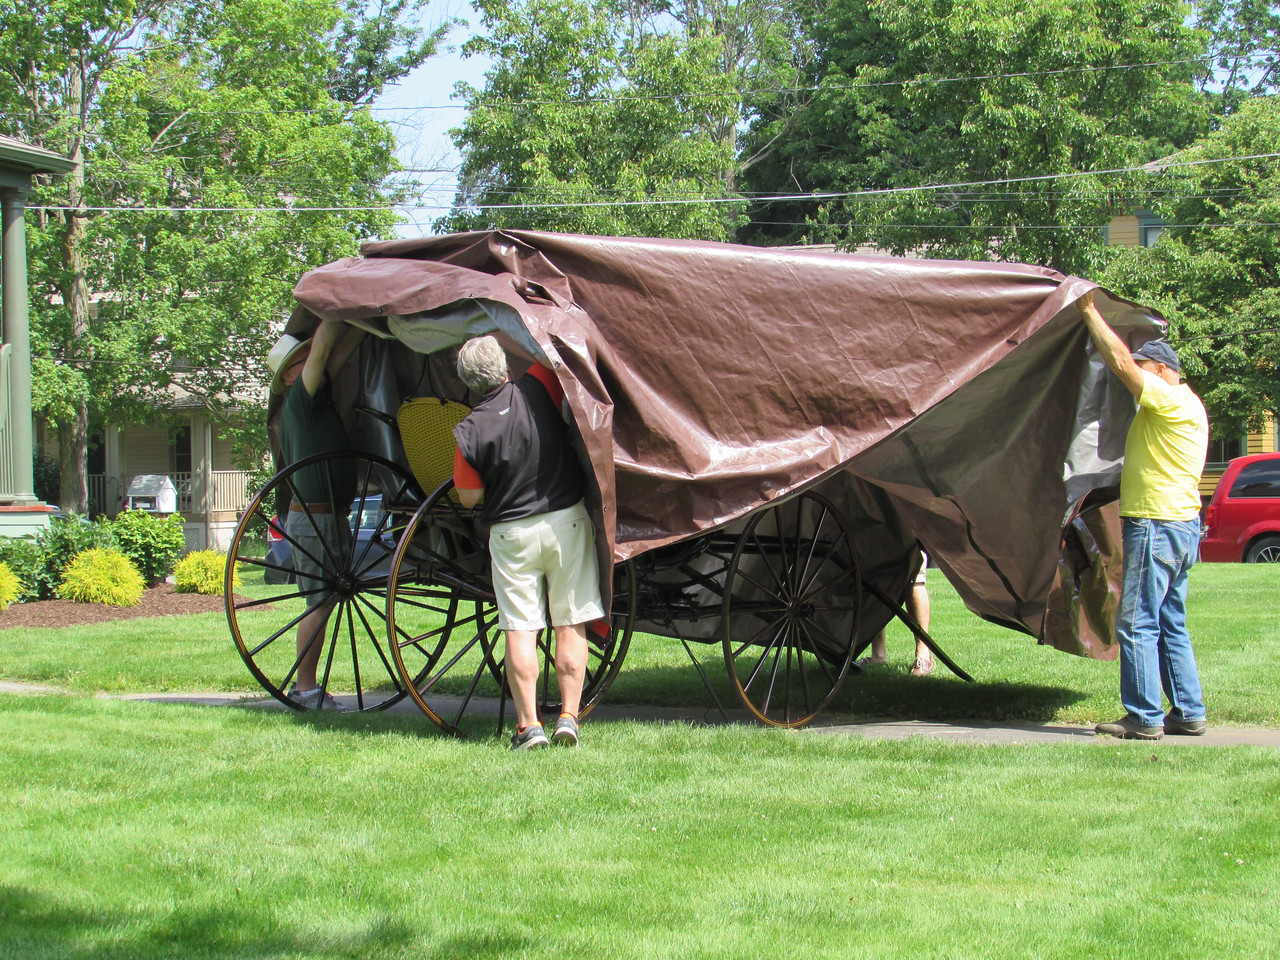 LYDIA MAINZER / SPECIAL TO THE GAZETTE Medina County Historical Society Members pull back a tarp covering a McDowell-Phillips carriage Saturday as it was unveiled to the public after being restored.